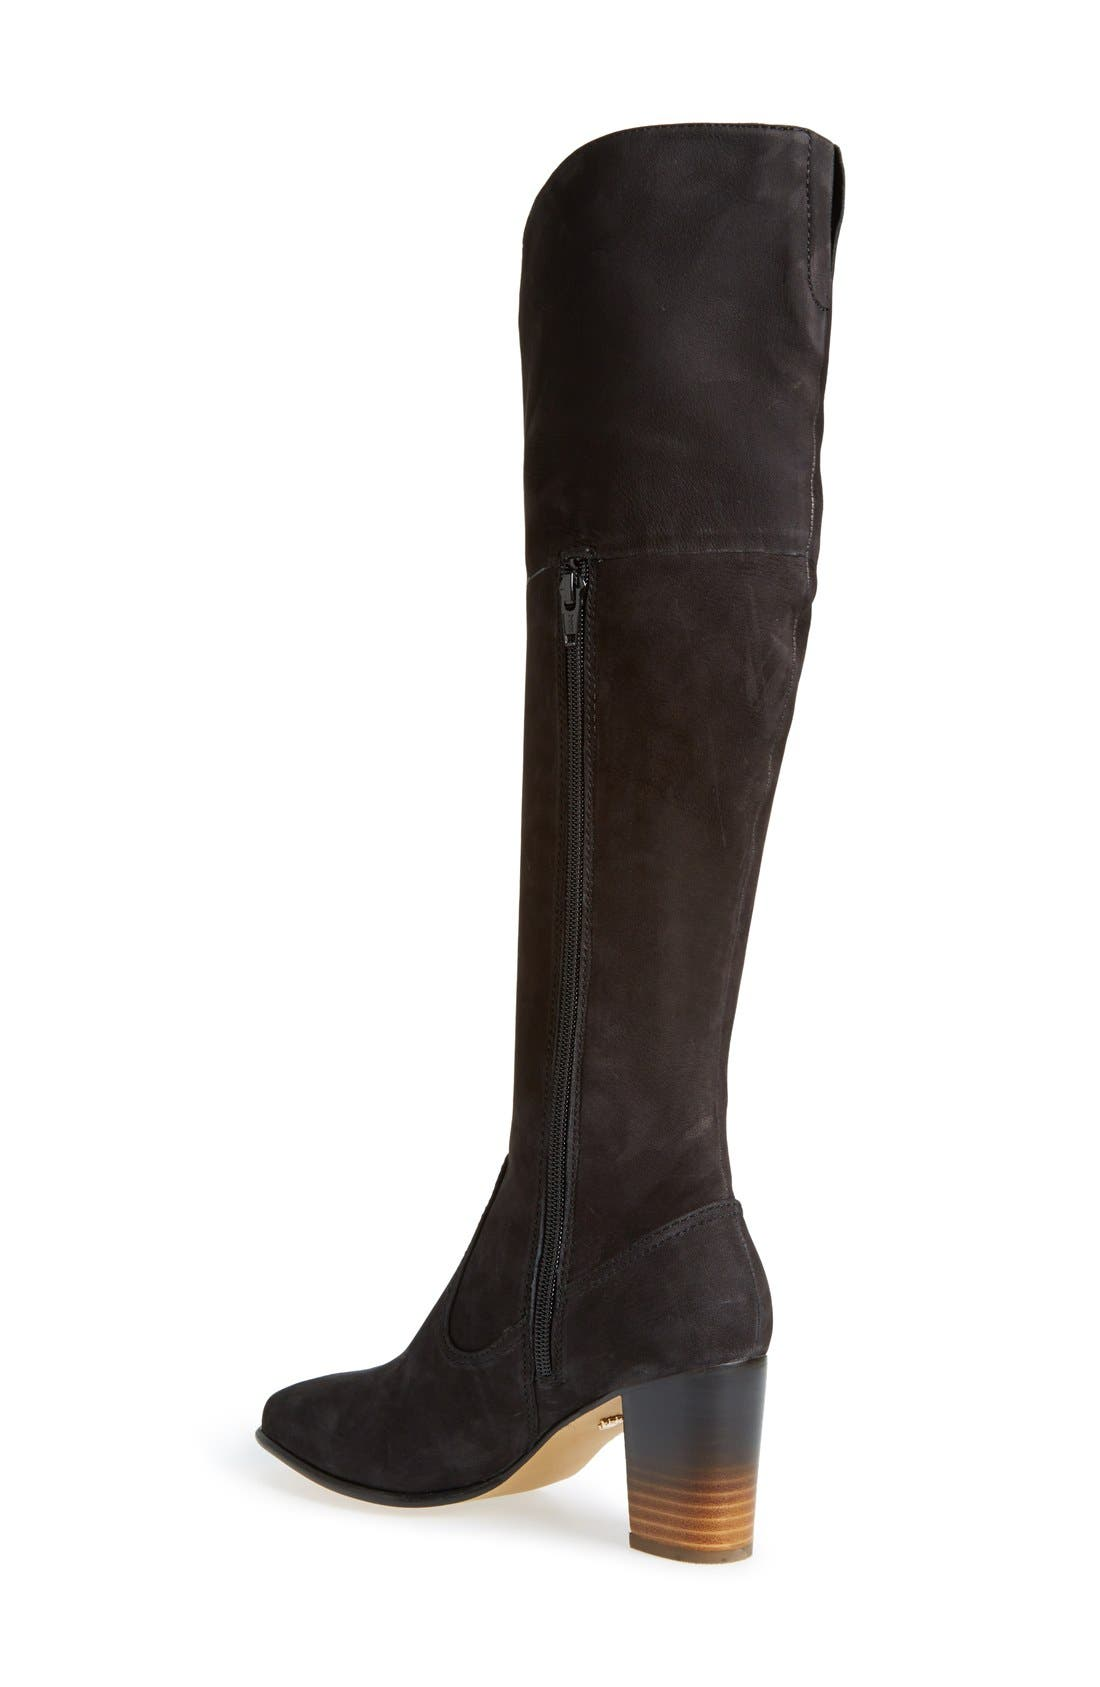 'Ventura' Over the Knee Boot,                             Alternate thumbnail 4, color,                             001